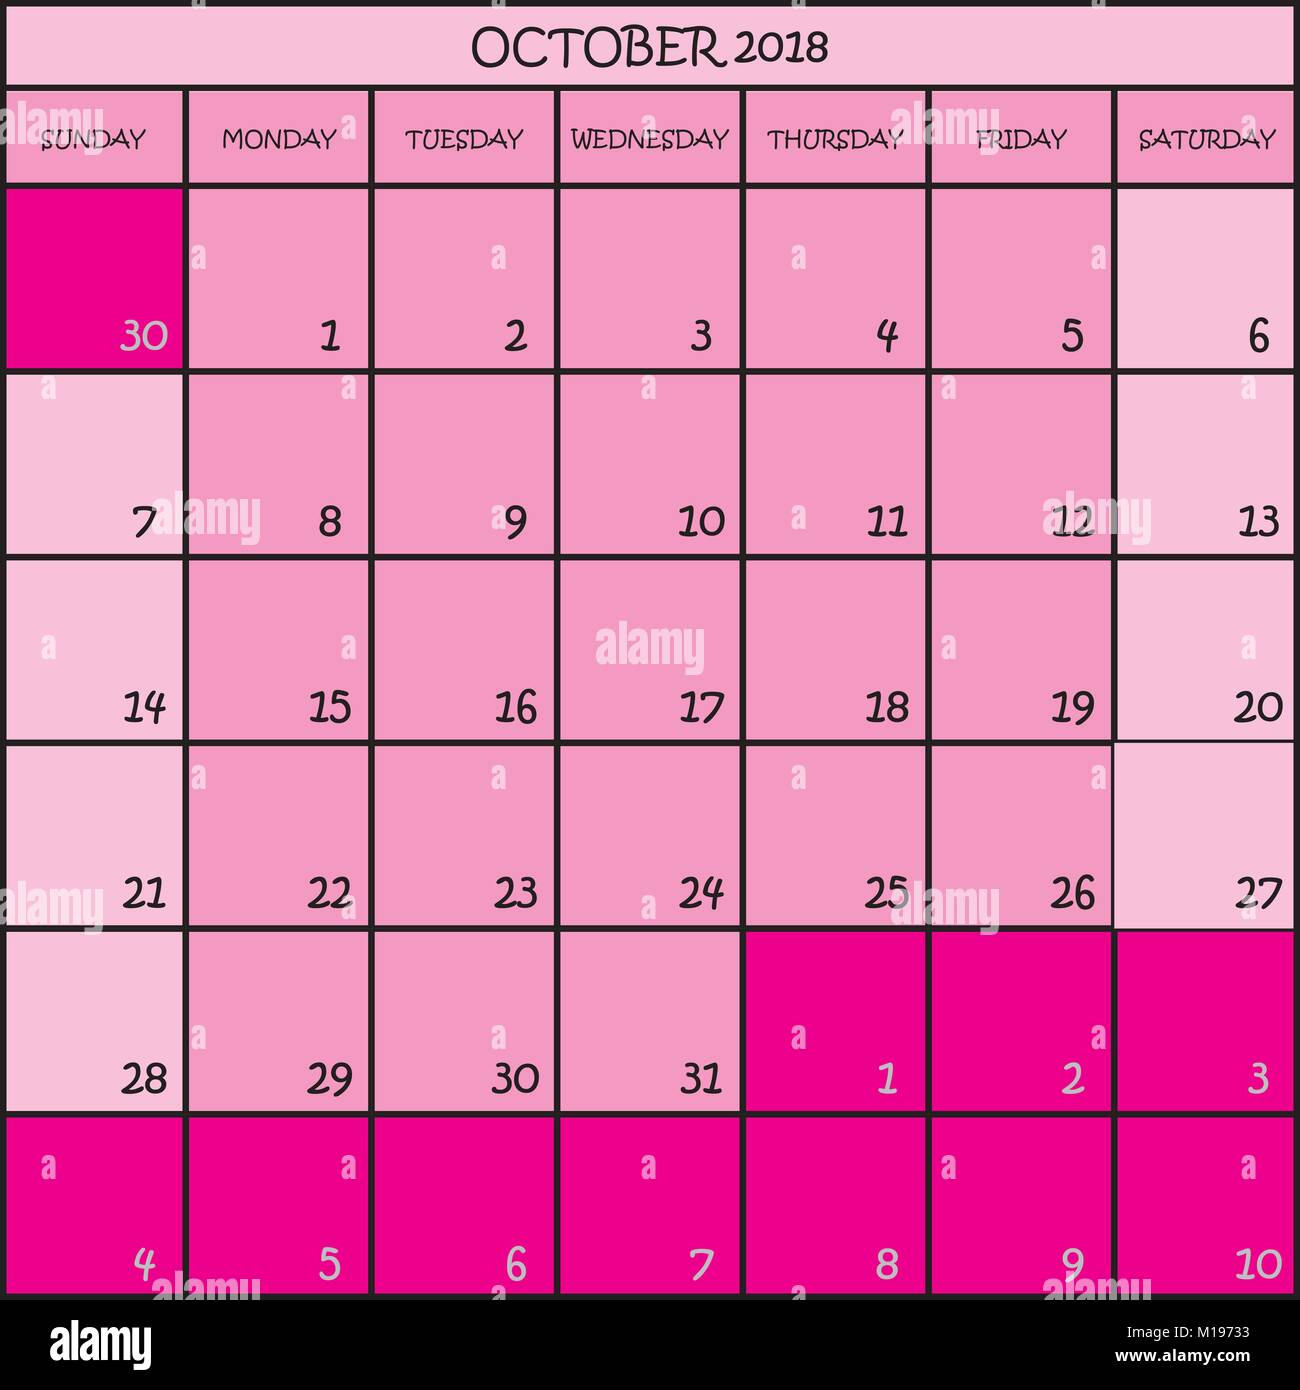 calendar planner october 2018 on transparent background